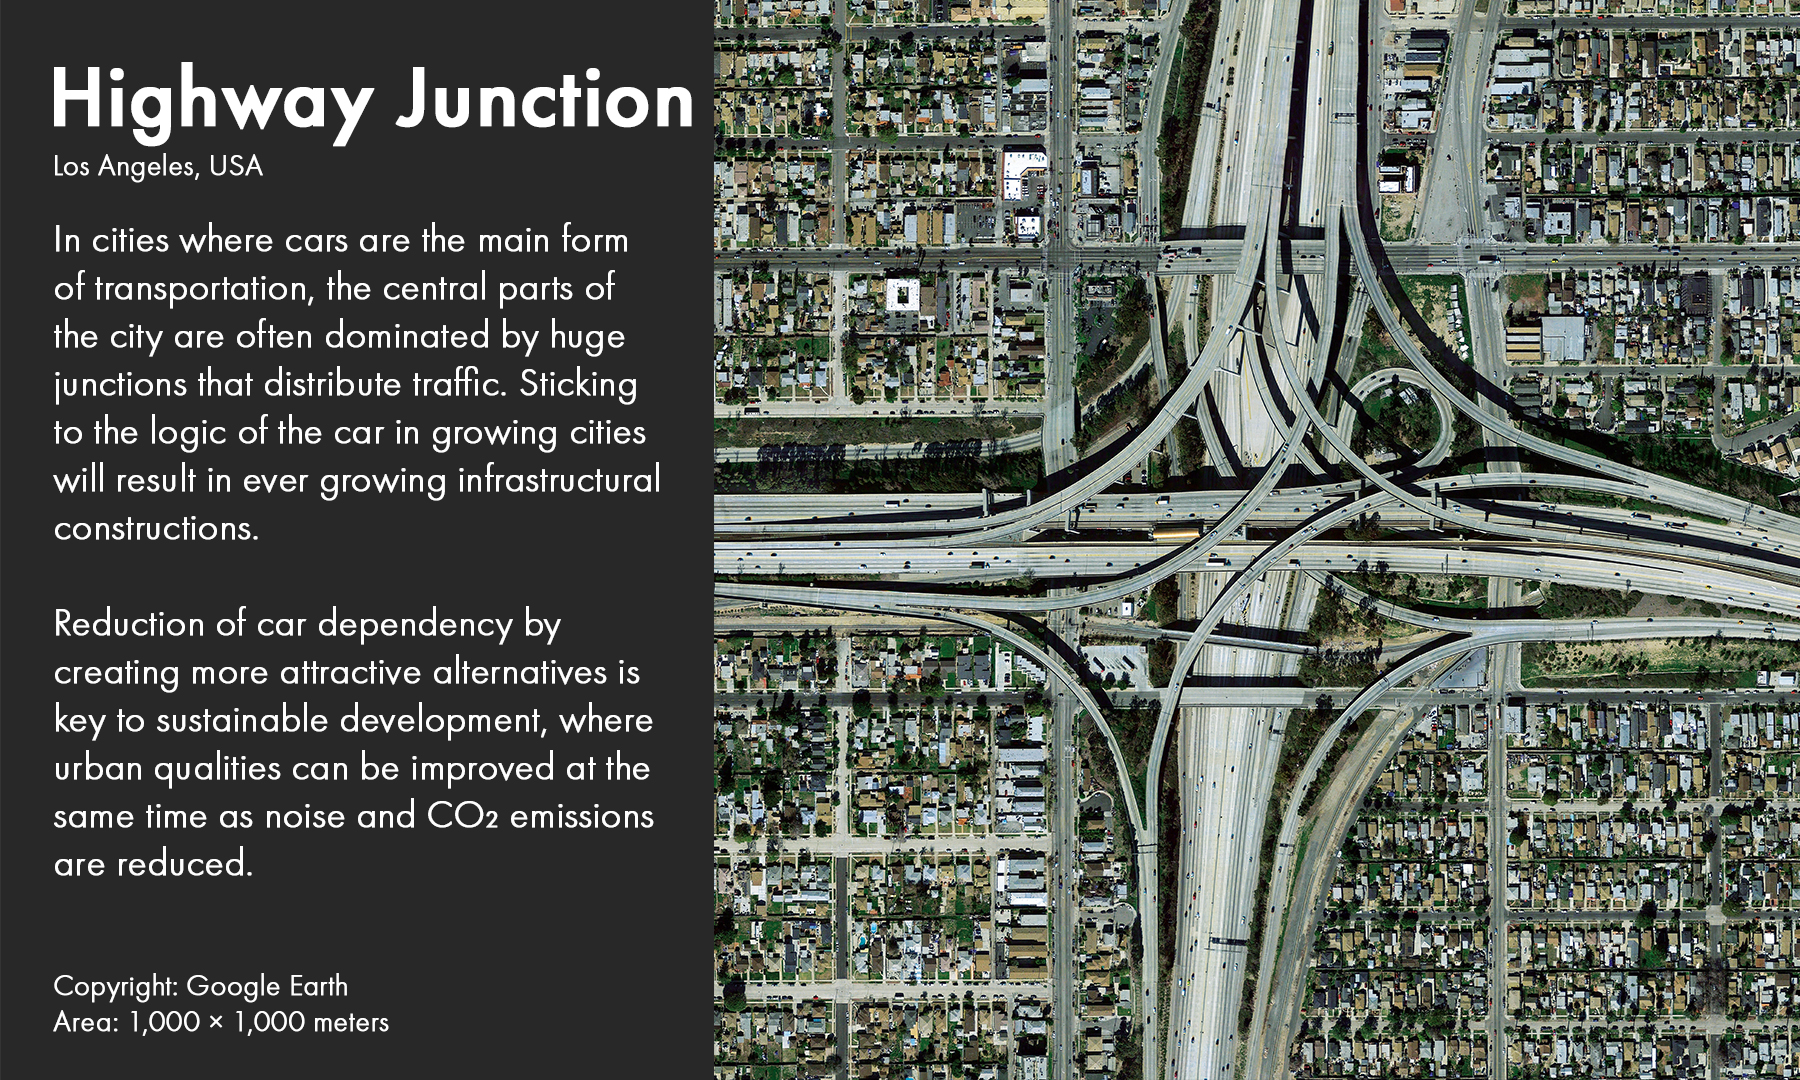 Highway Junction, Los Angeles, USA